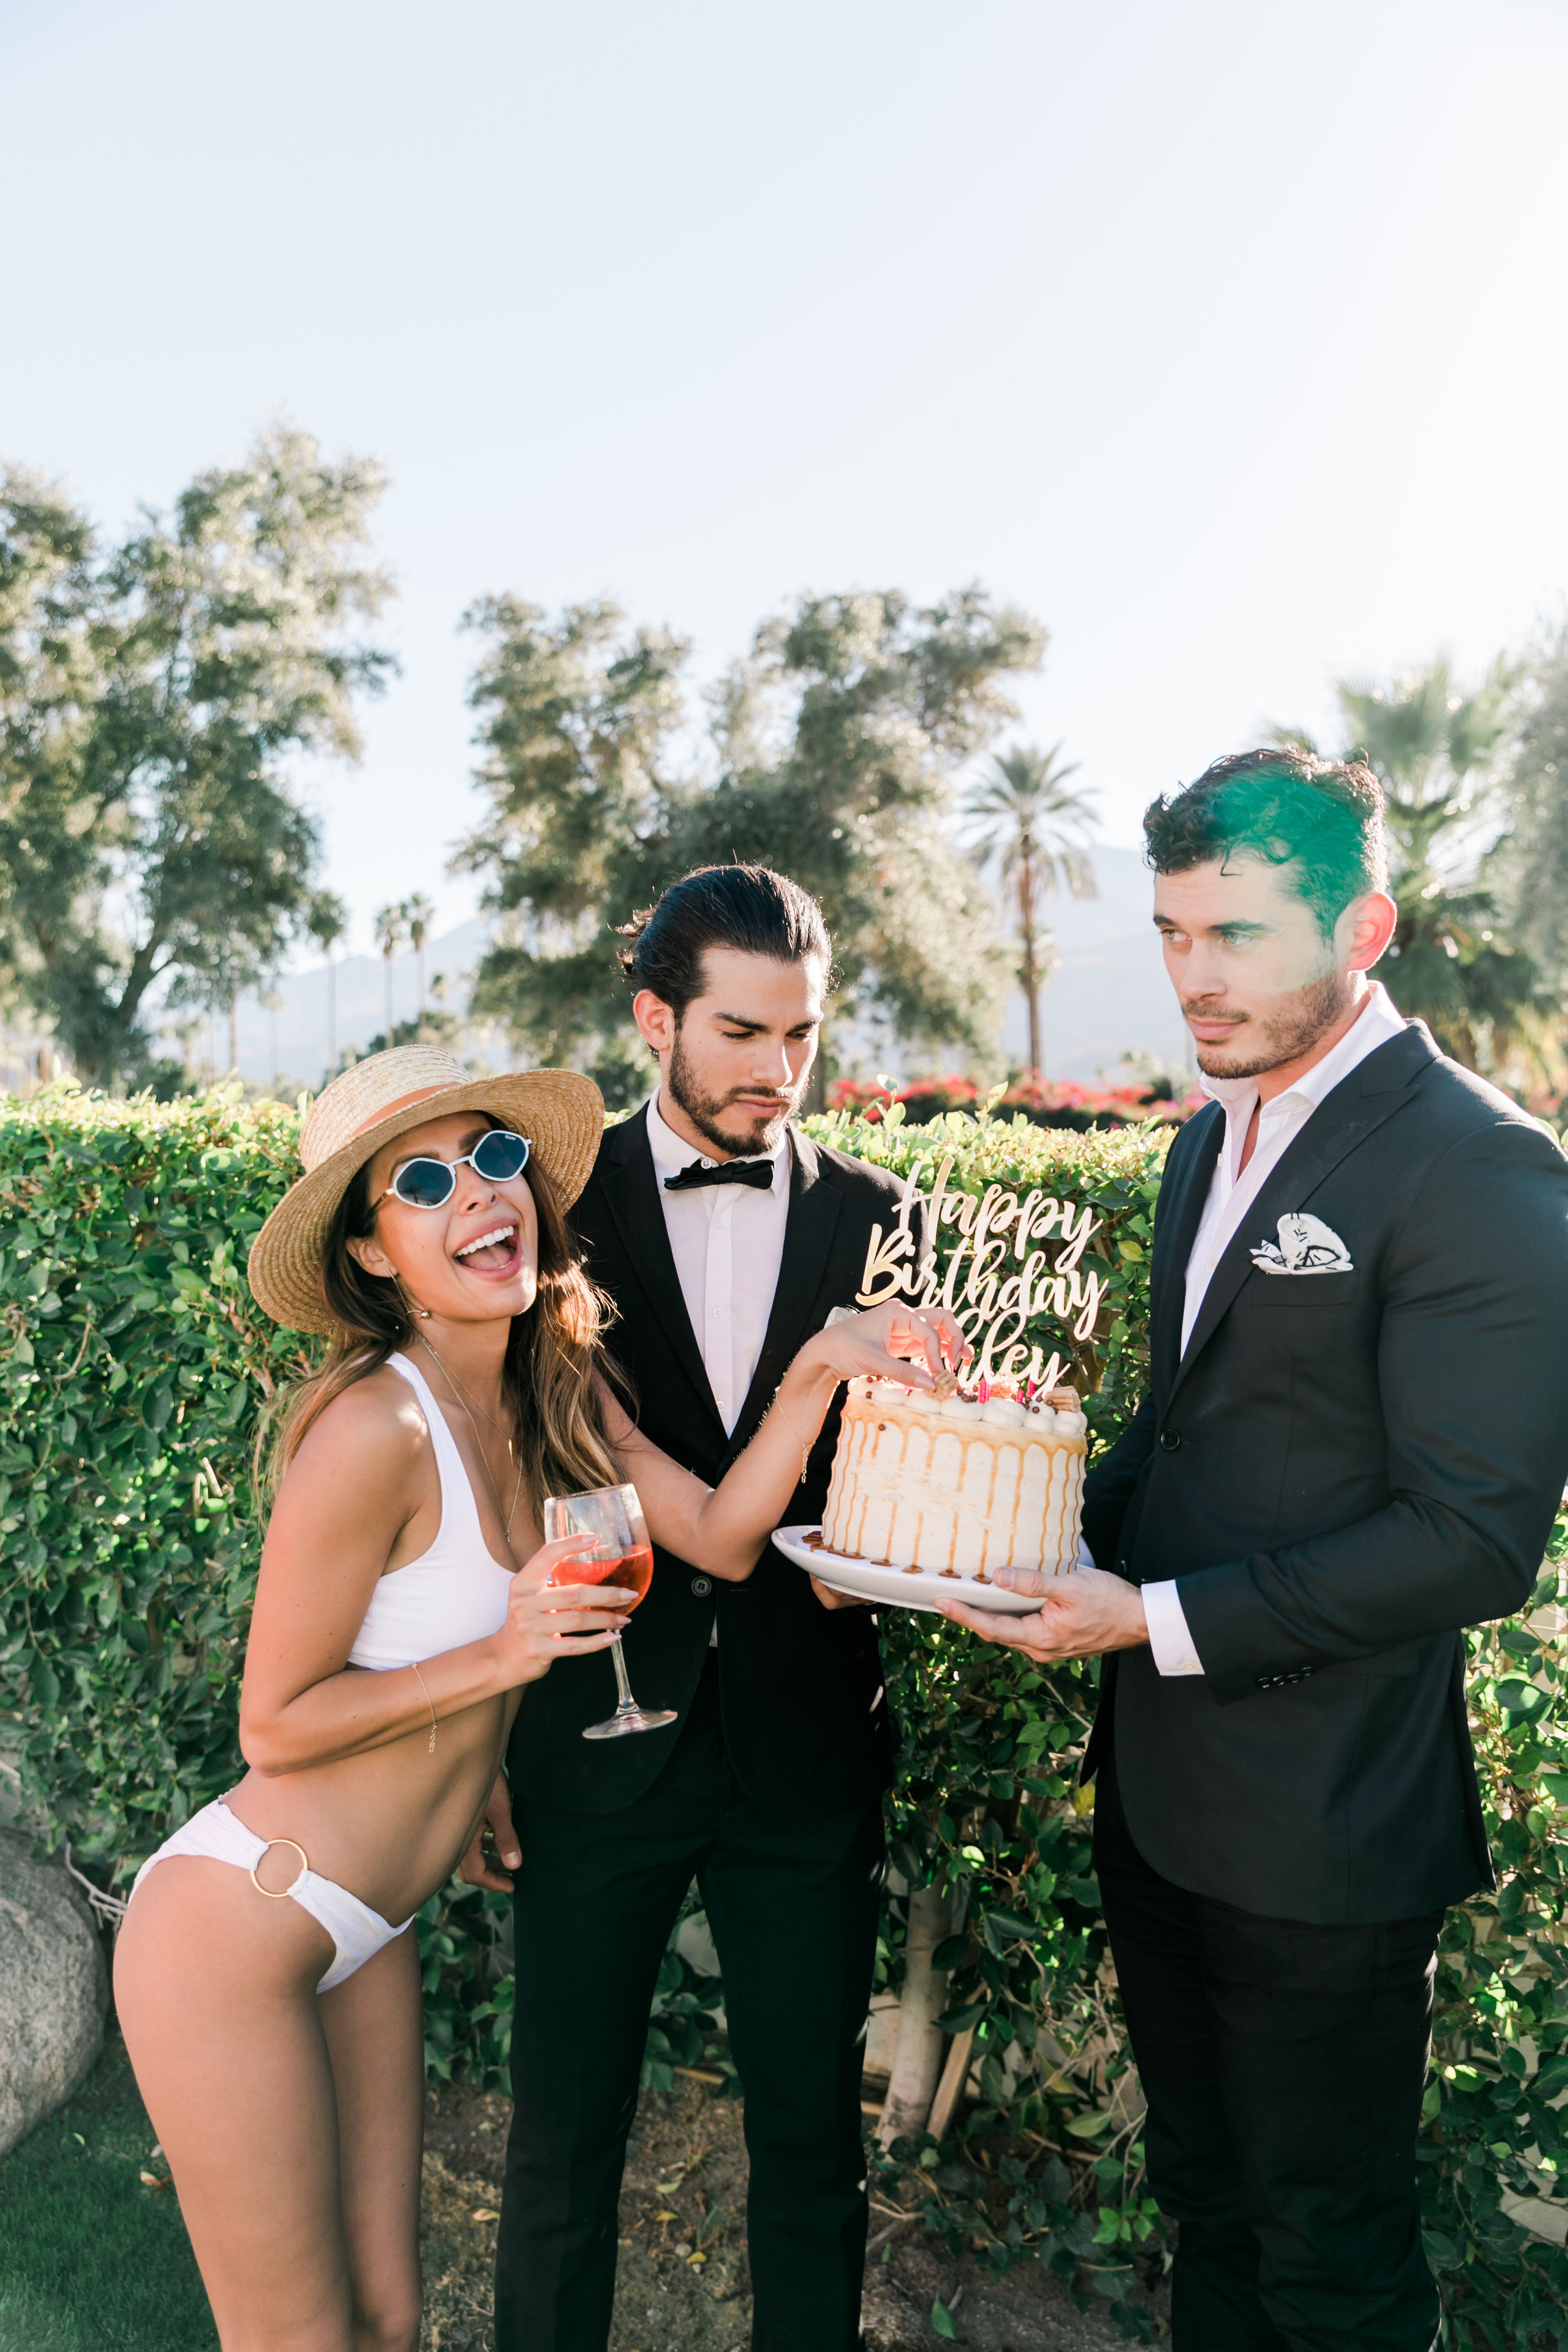 Everyday Pursuits Bachelorette Birthday Party